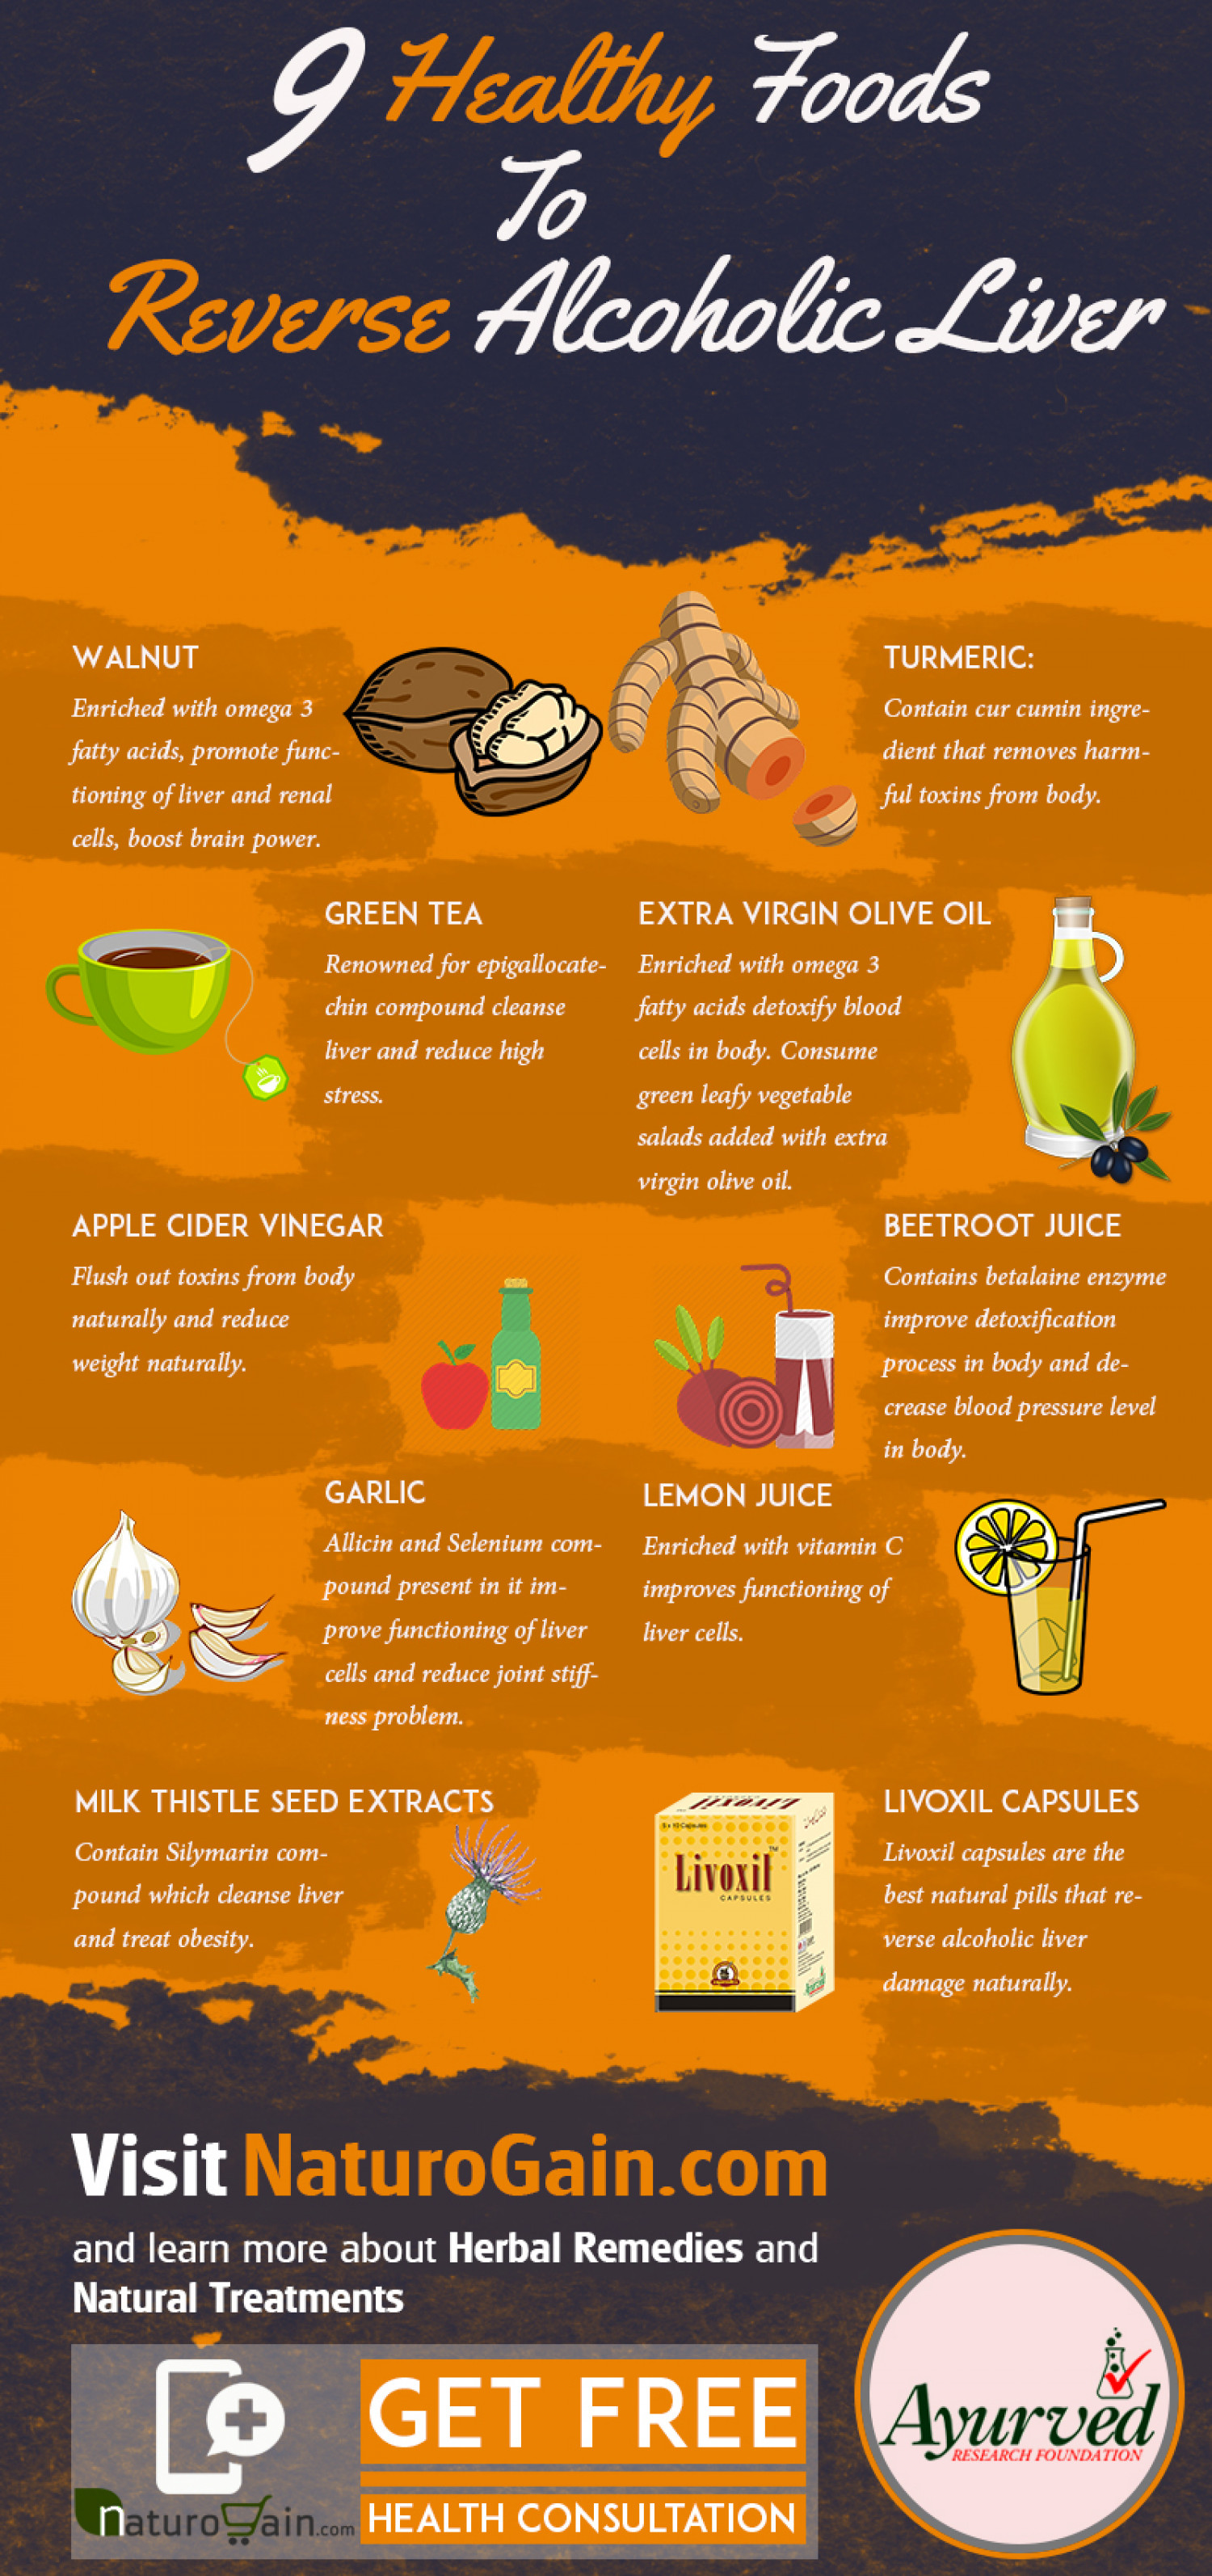 9 Natural Foods for Healthy Liver to Reverse Alcoholic Damage Naturally Infographic